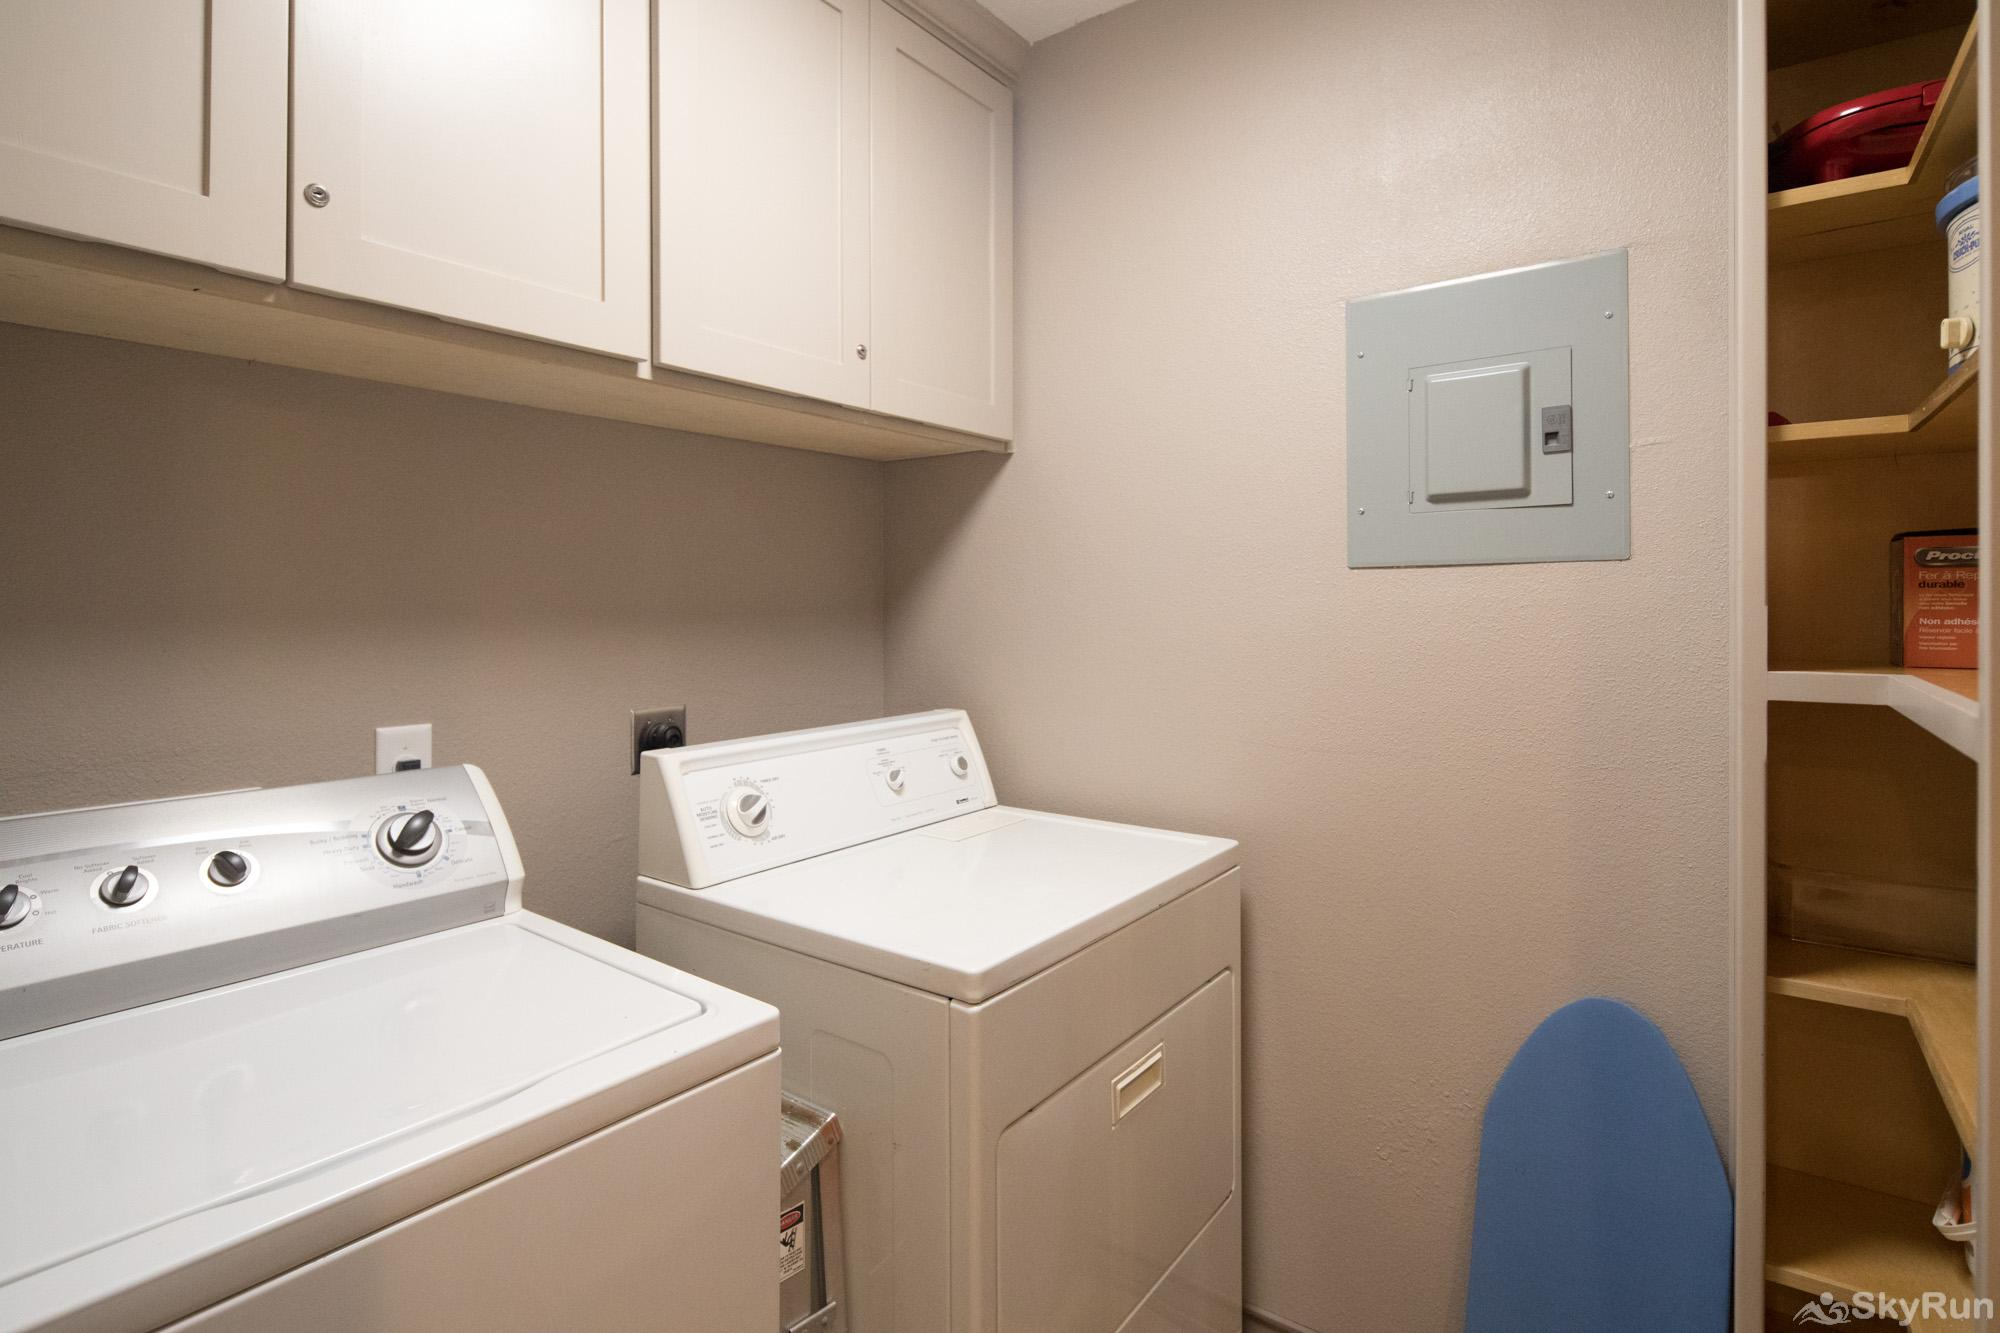 DUKE'S HORSESHOE HOUSE Washer and Dryer Available for Guest Use